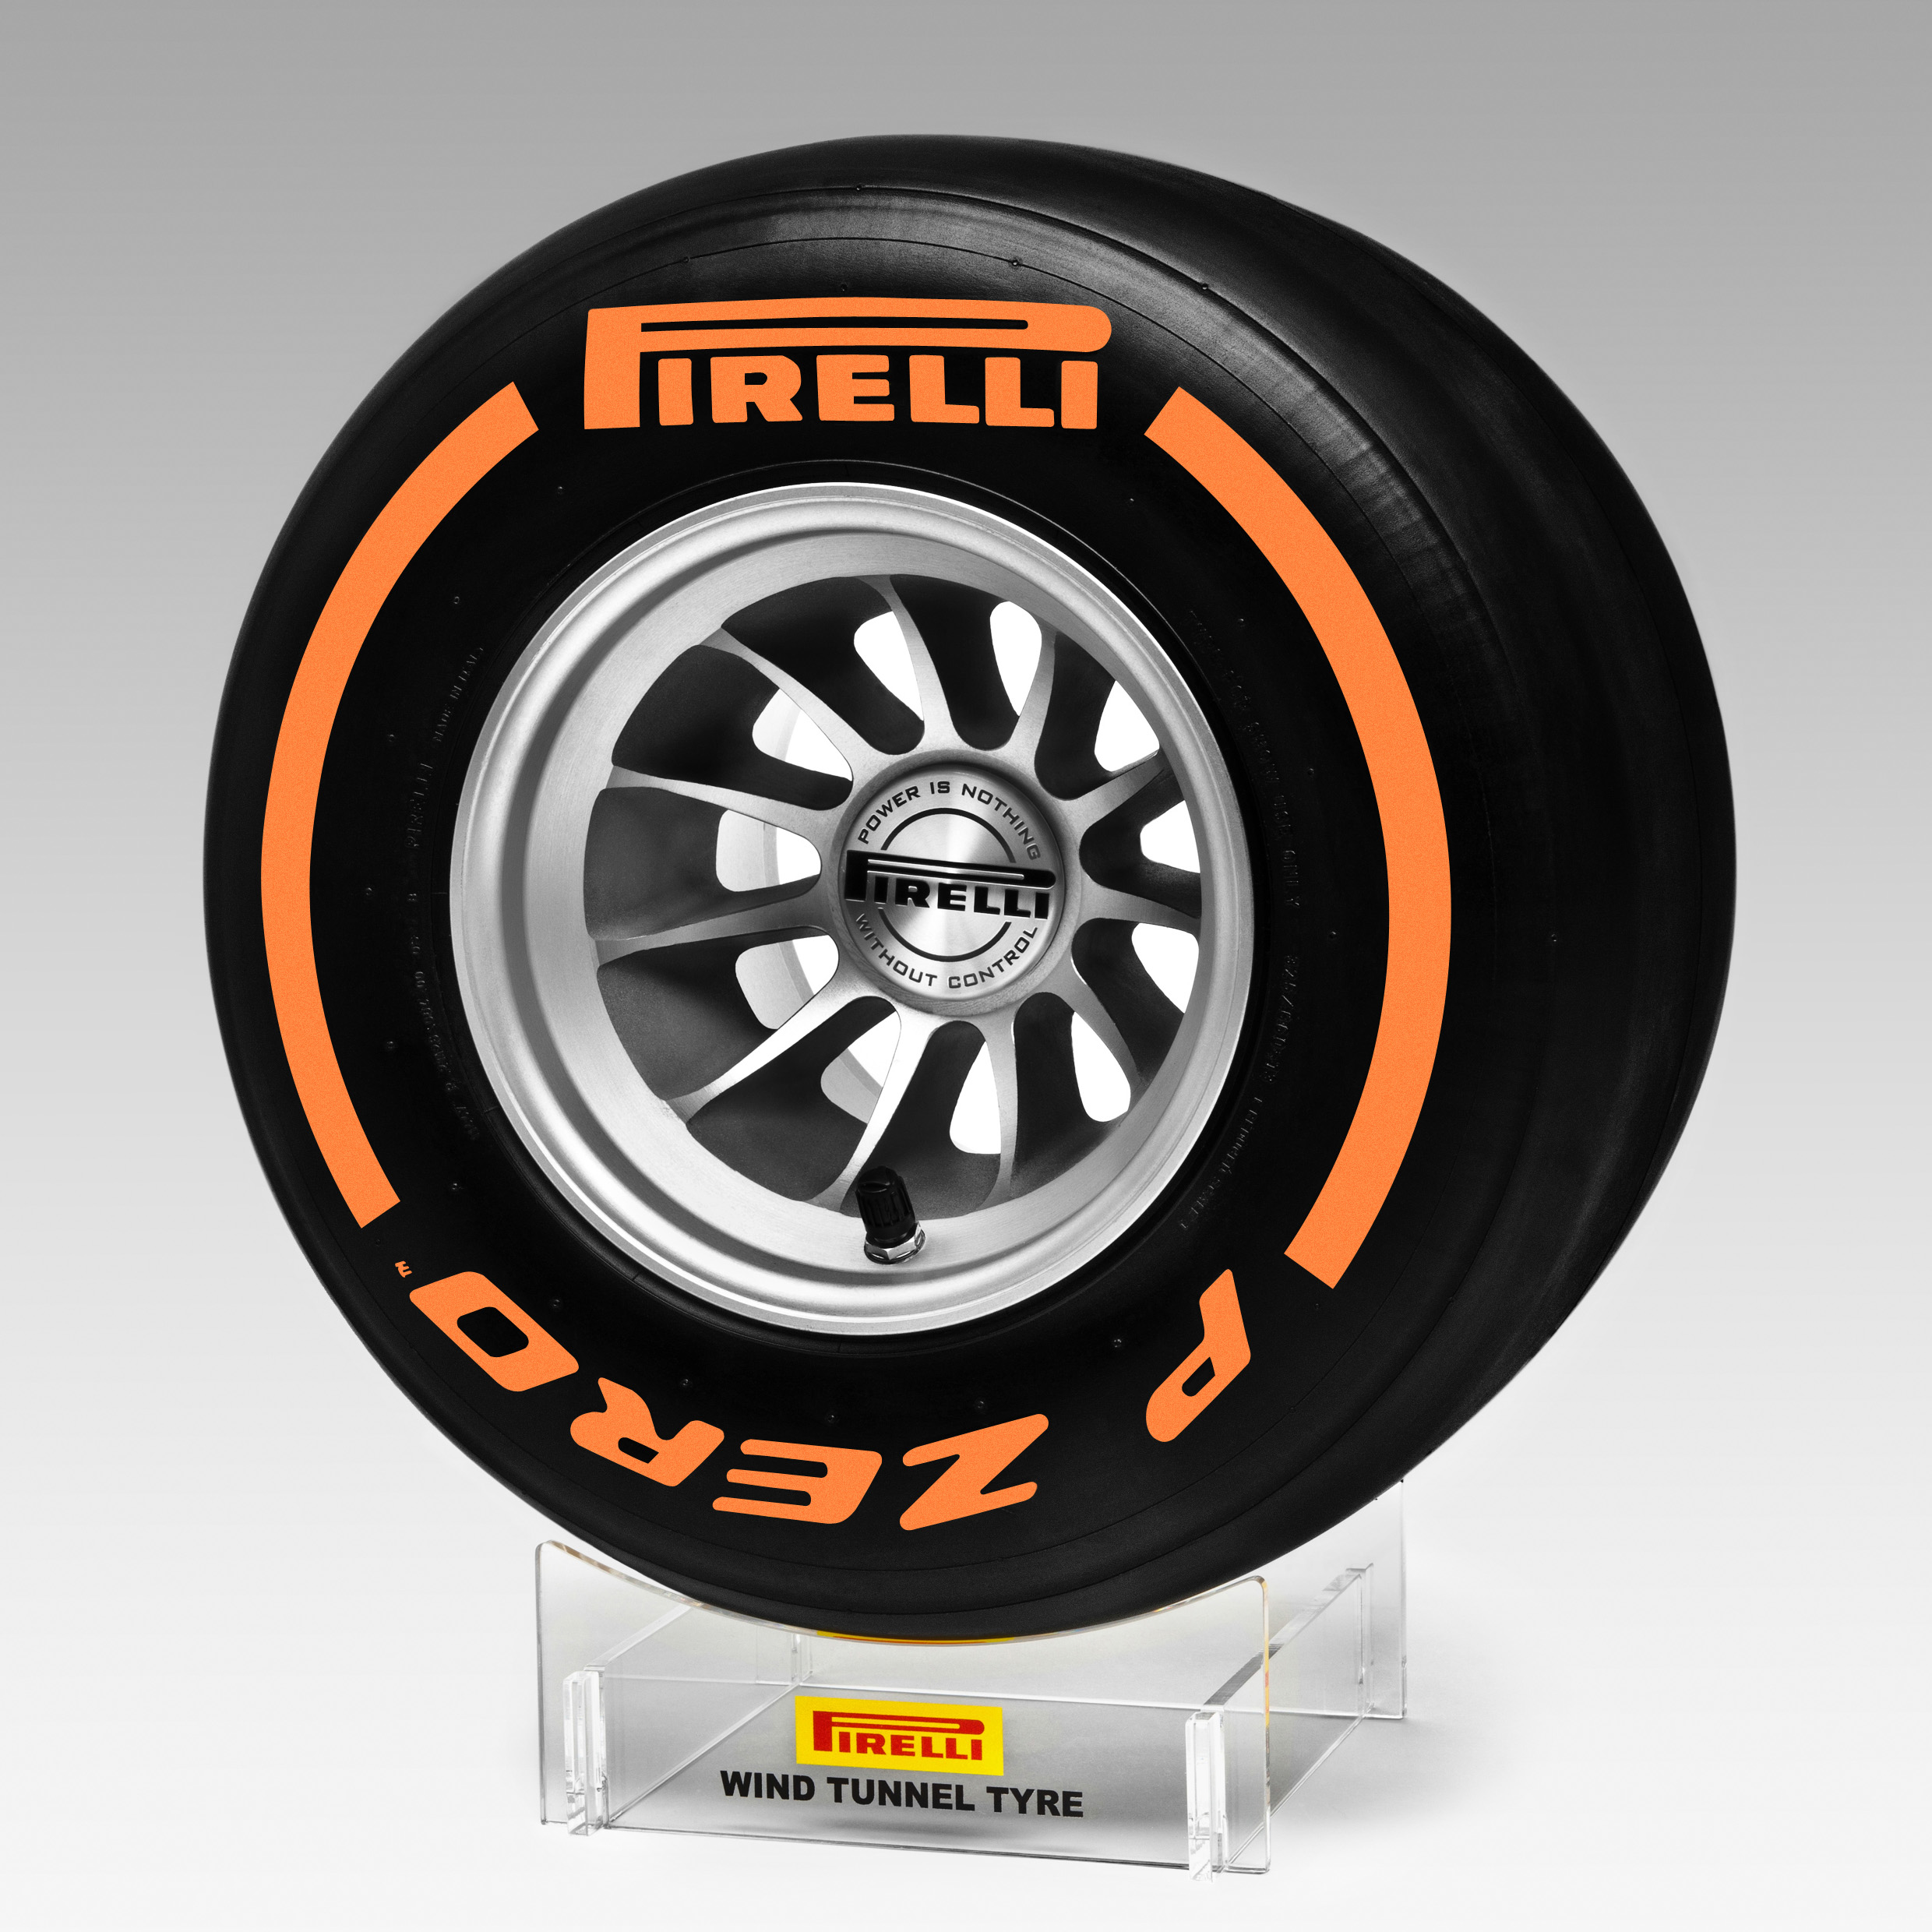 Pirelli Hard Replica Wind Tunnel Tyre 1:2 Scale